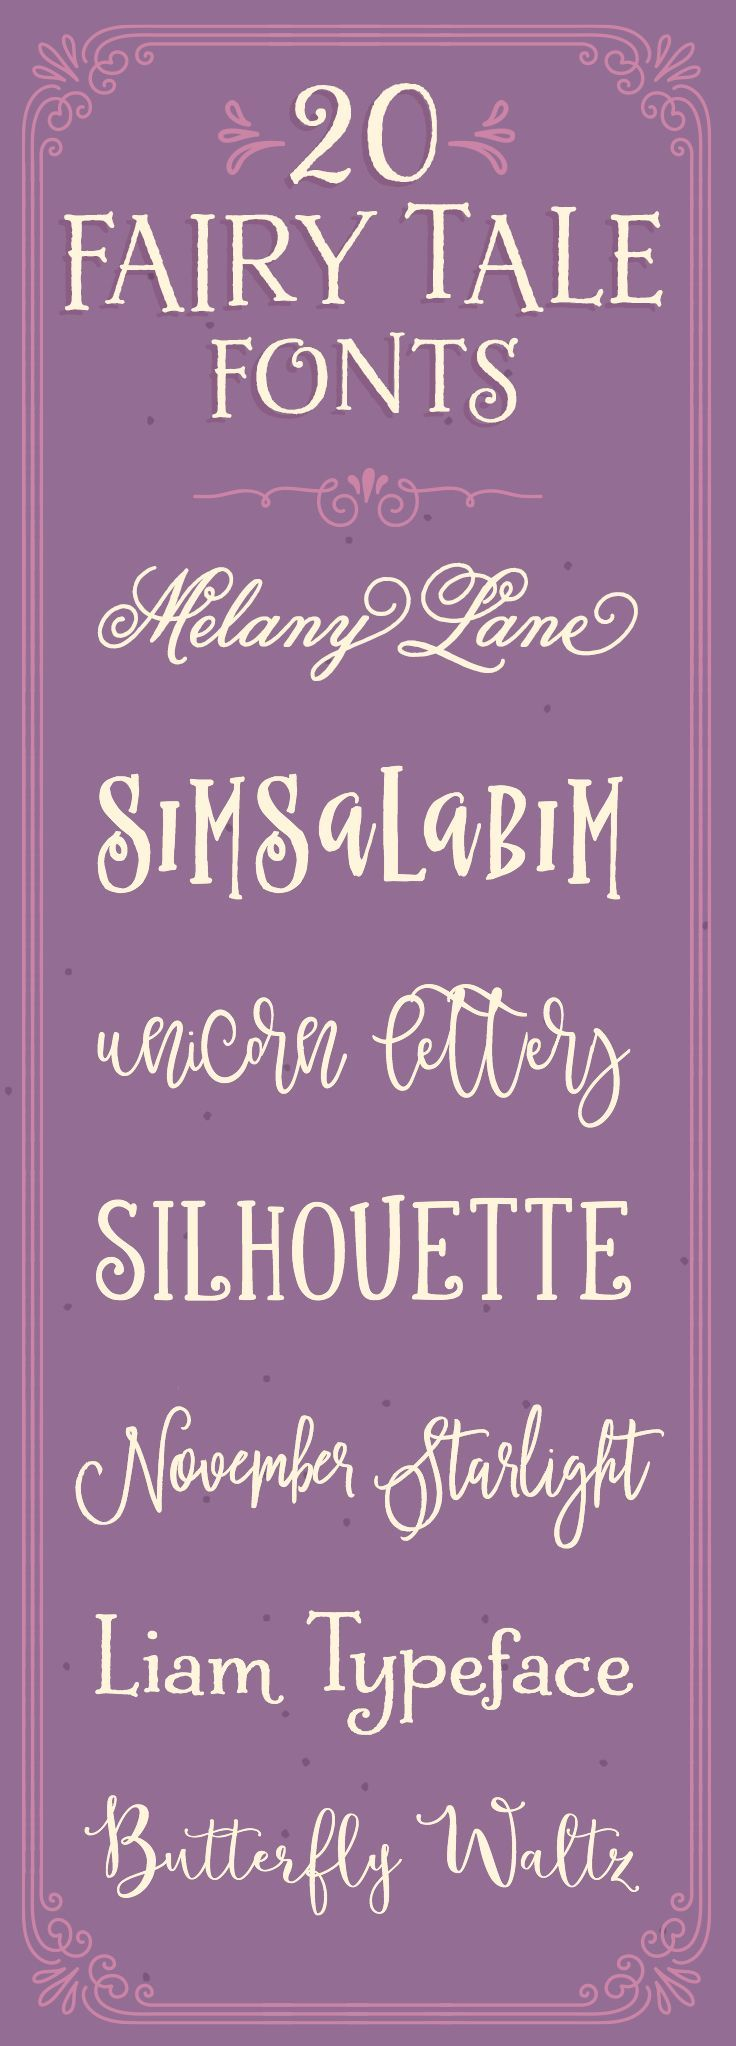 20 Whimsical Fonts That Look Like They're Straight Out of a Fairy Tale ~ Creative Market Blog